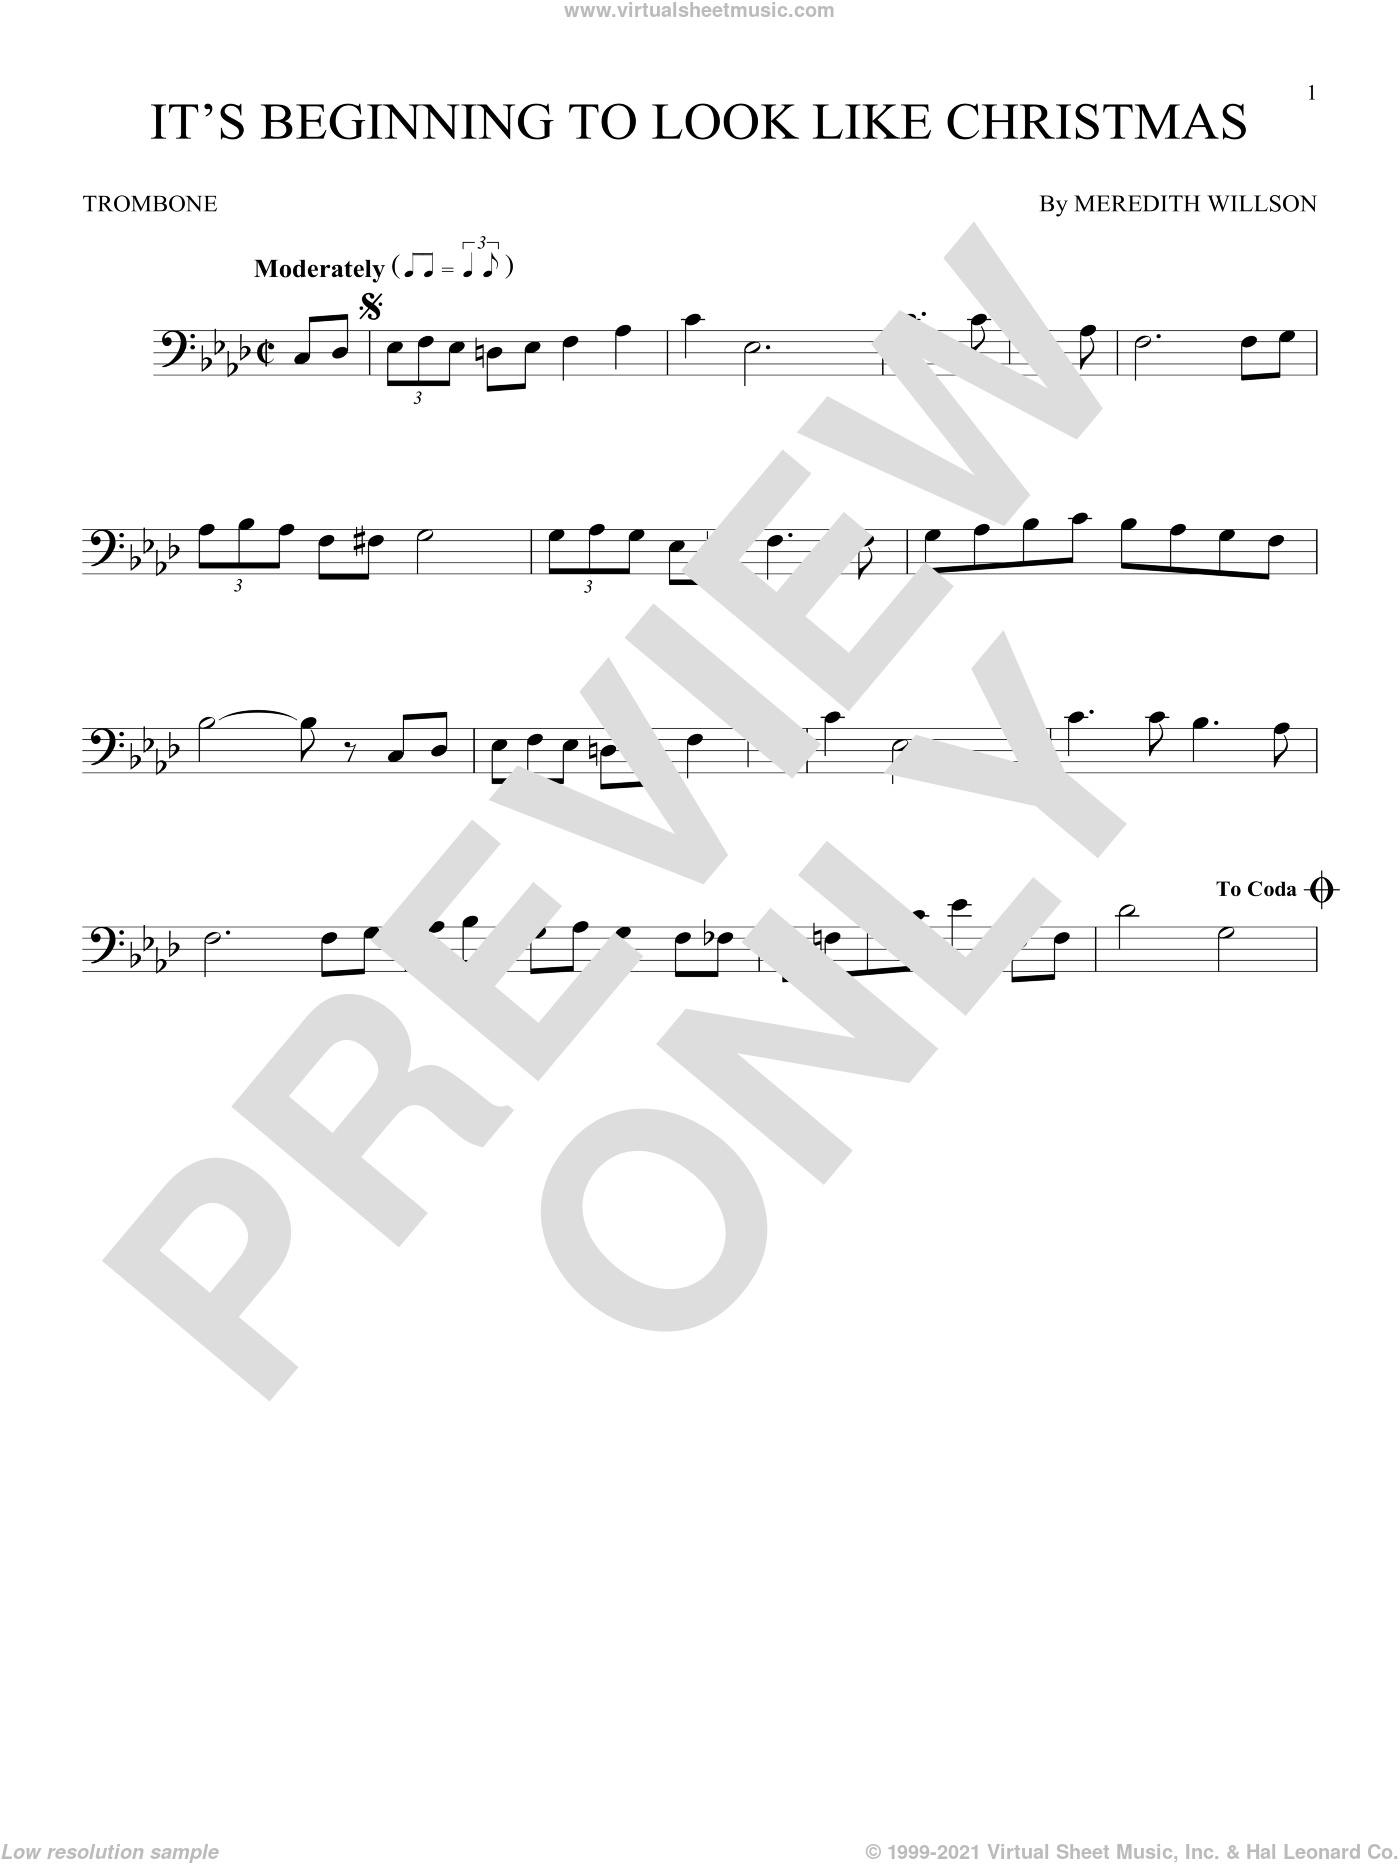 It's Beginning To Look Like Christmas sheet music for trombone solo by Meredith Willson, intermediate skill level